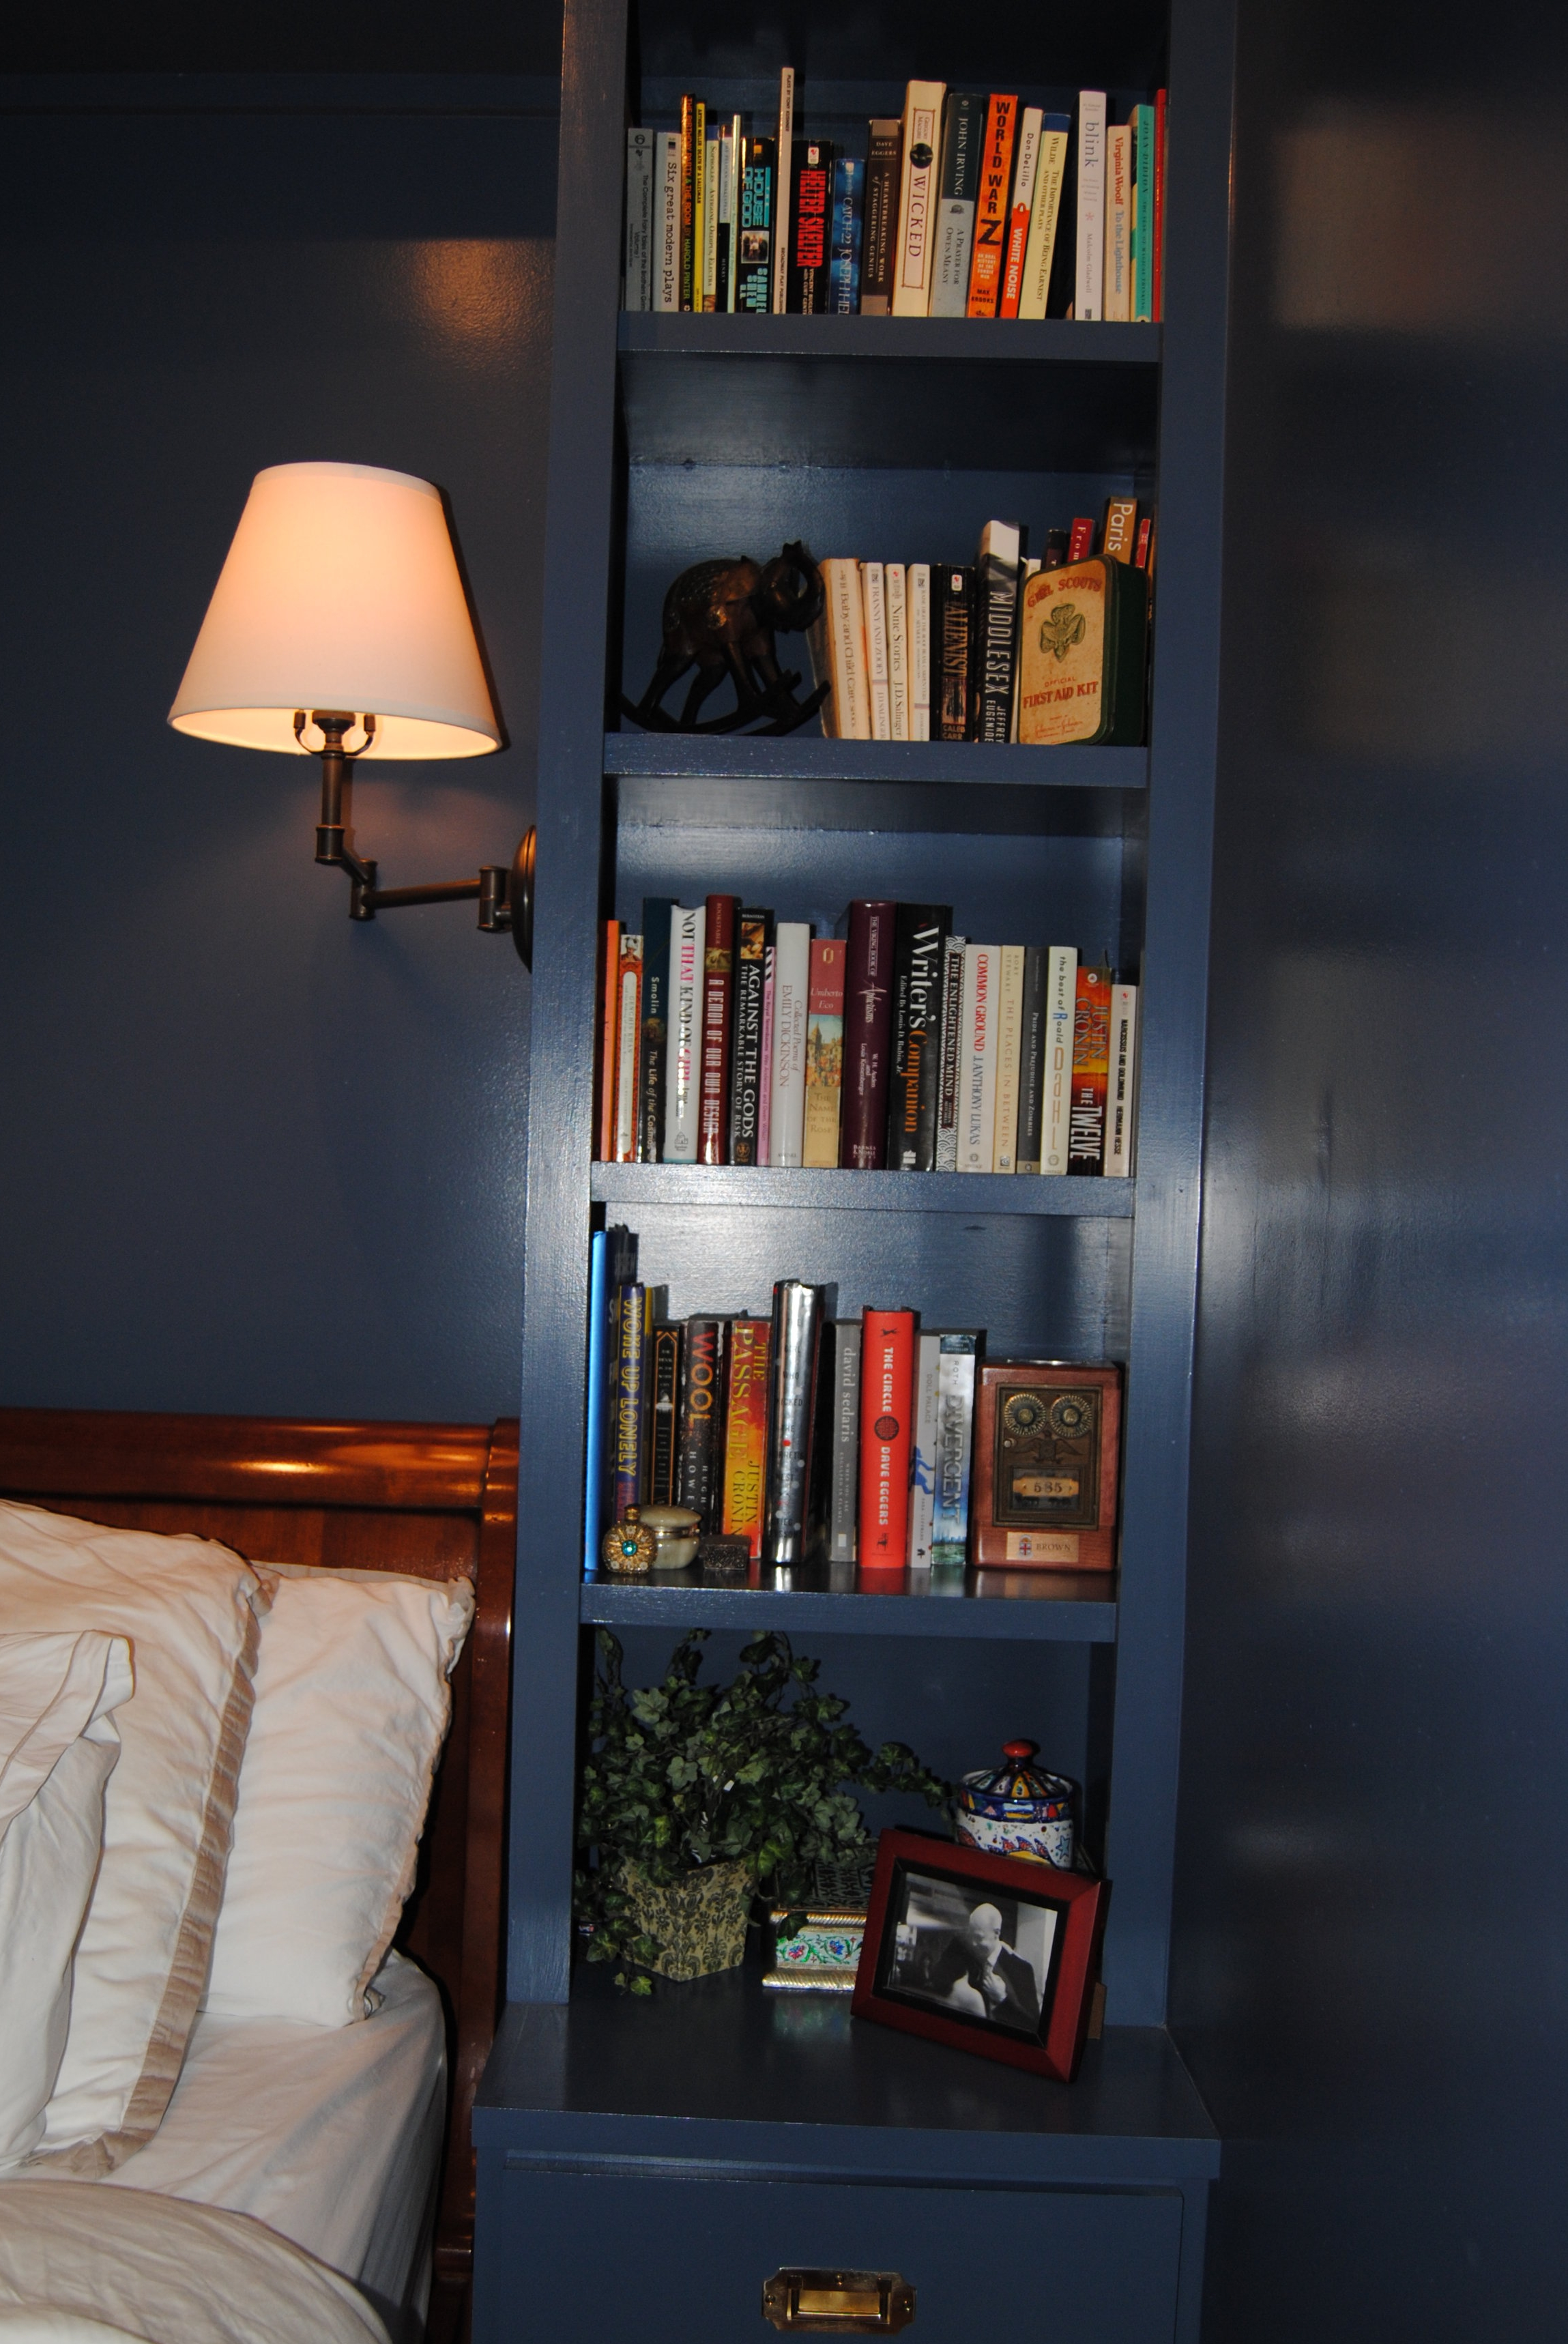 - High gloss marine blue paint on both walls and built-ins give this master bedroom a cozy library feel